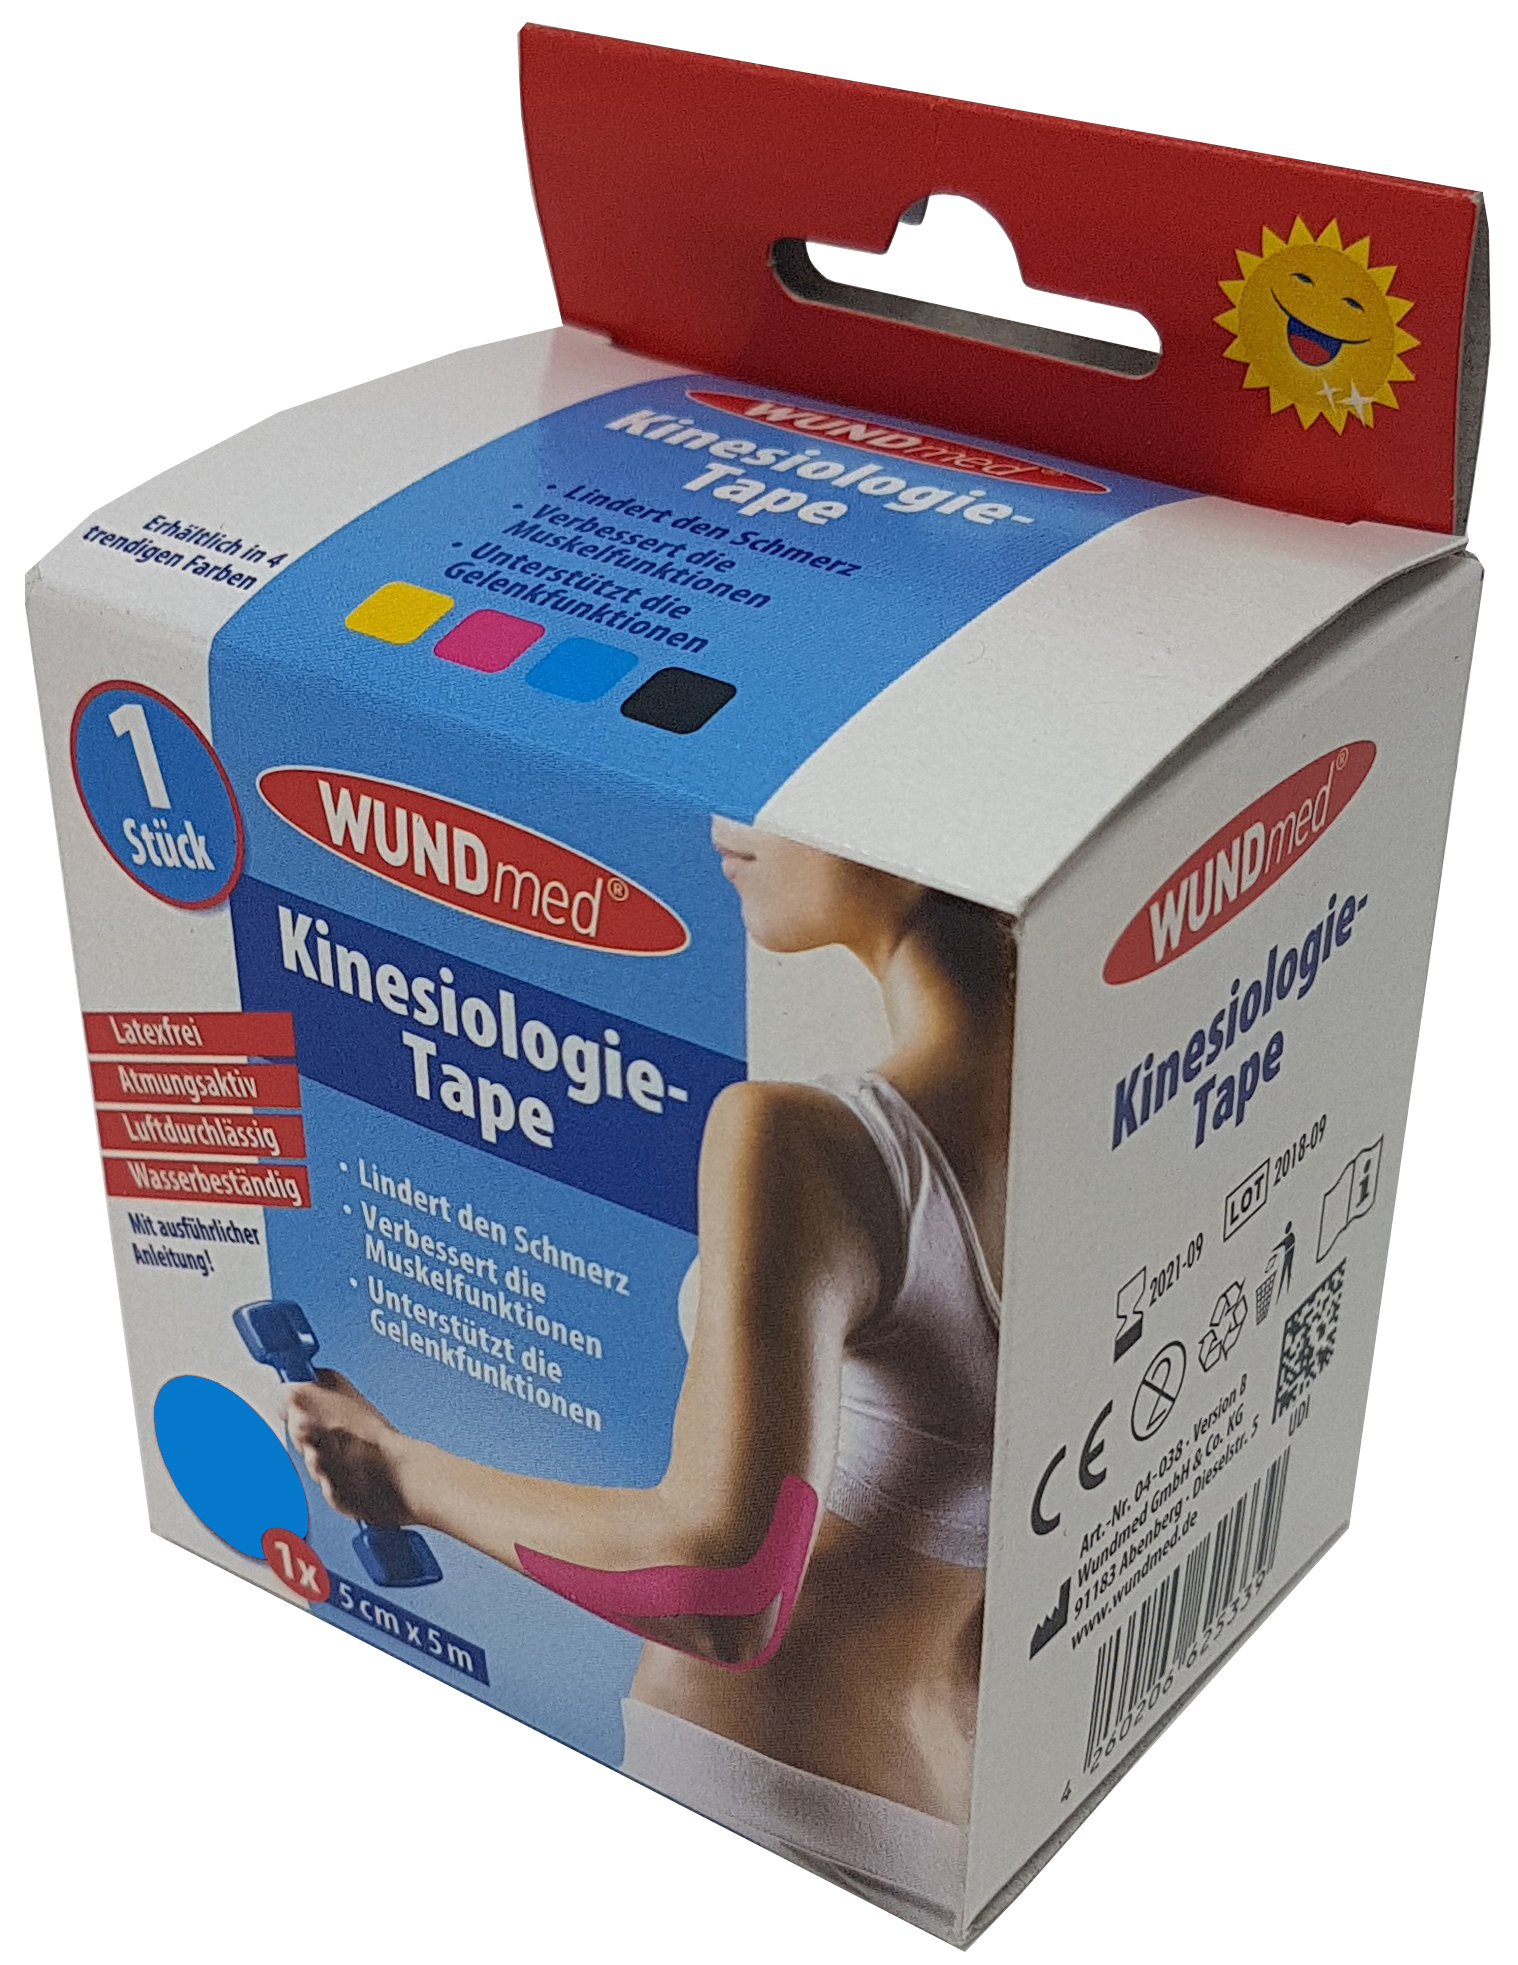 01769 - Wundmed Kinesiologisches Tape, 5m x 5cm, türkis